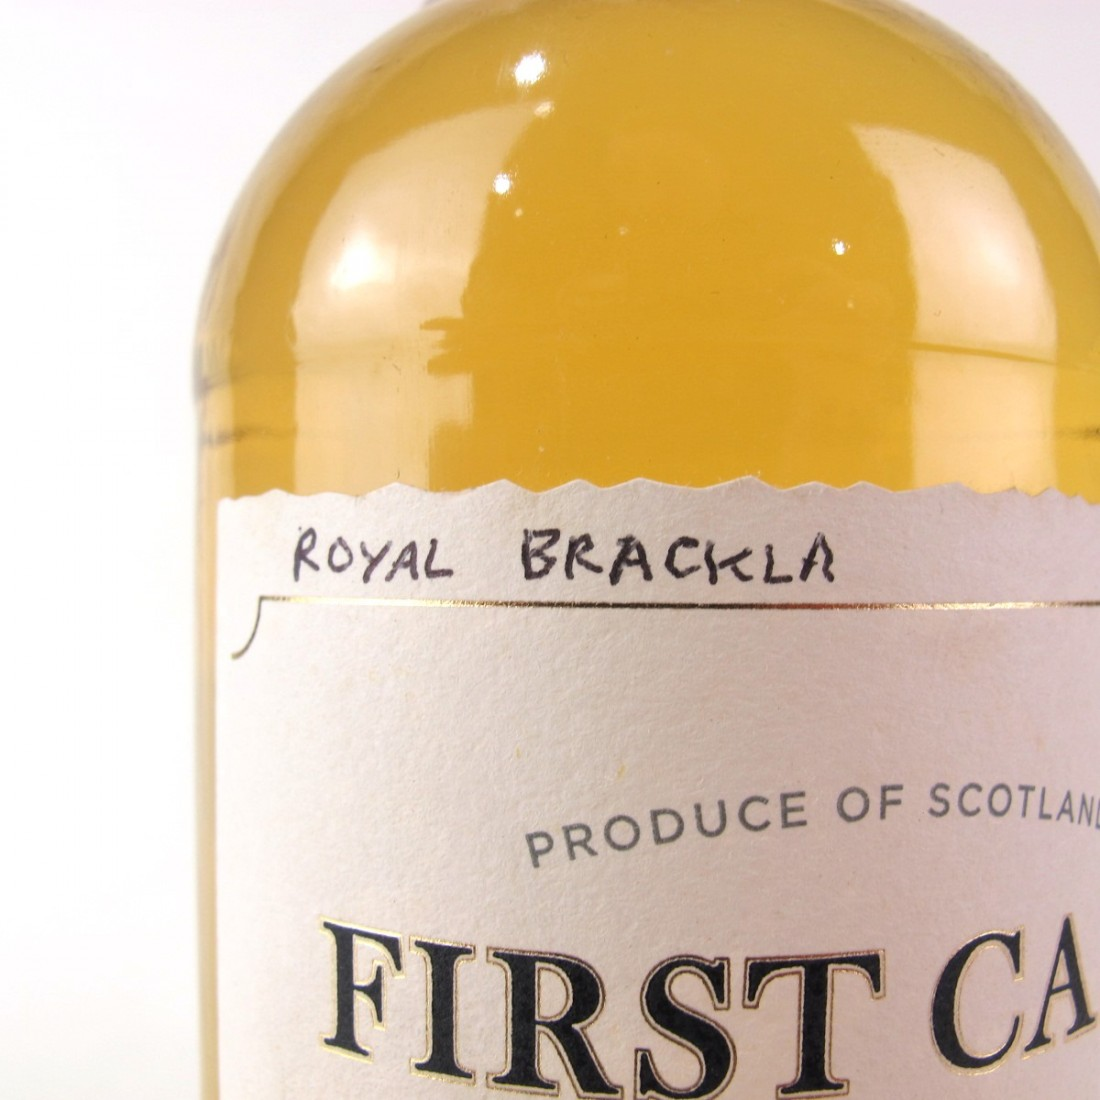 Royal Brackla 1993 First Cask 18 Year Old